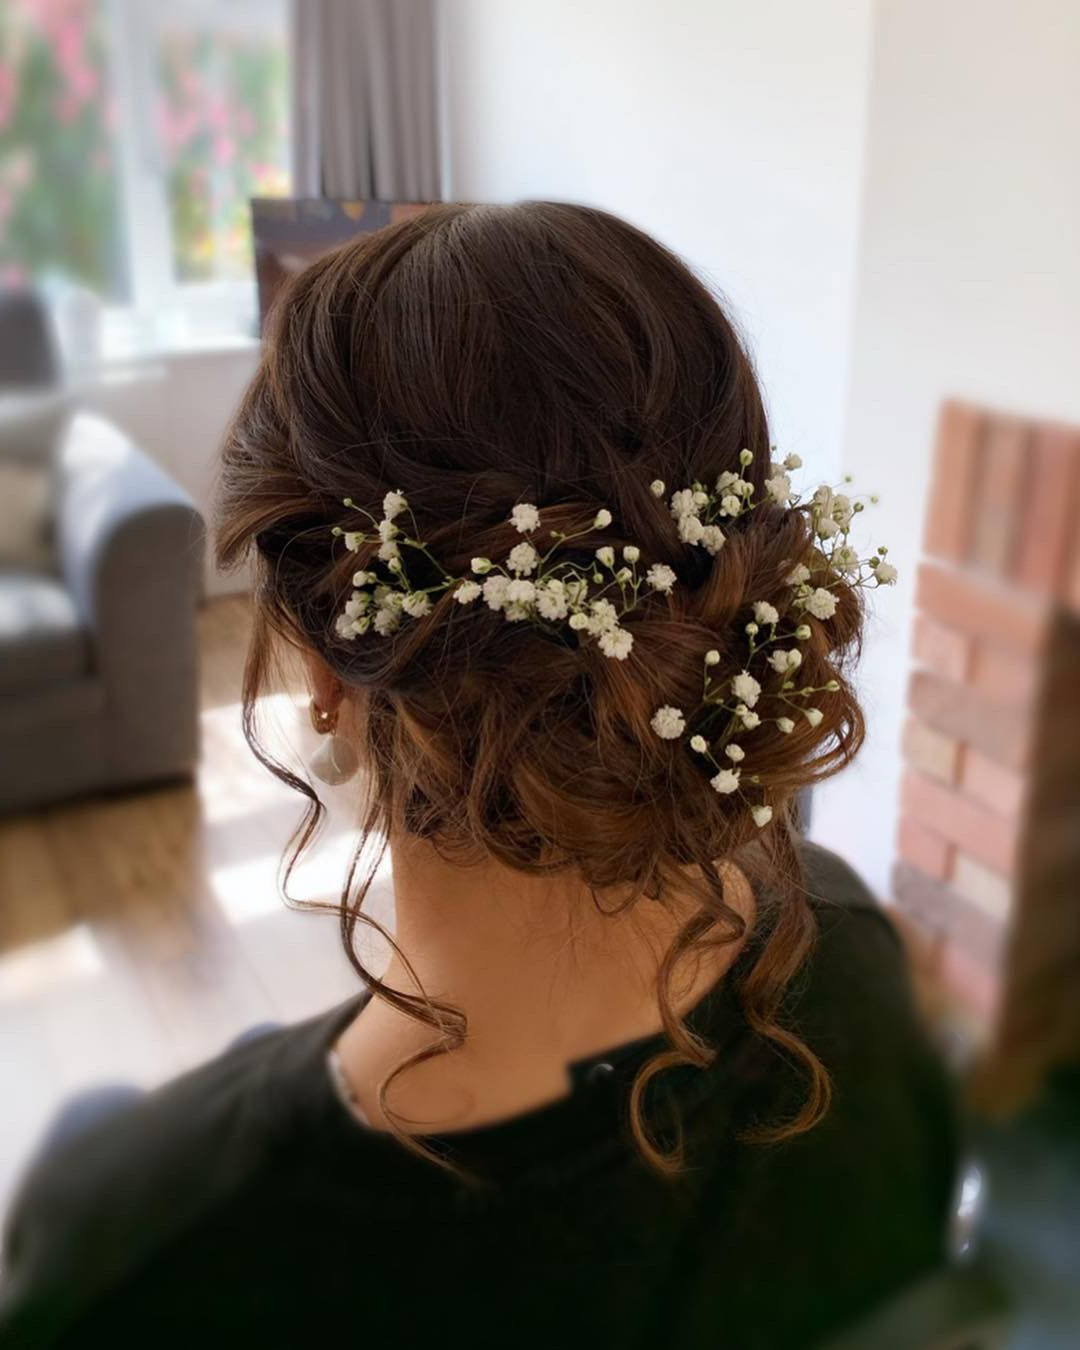 Preferred Romantic Florals Updo Hairstyles For Bridal Updo – Romantic, Boho, Relaxed, Floral (View 18 of 20)